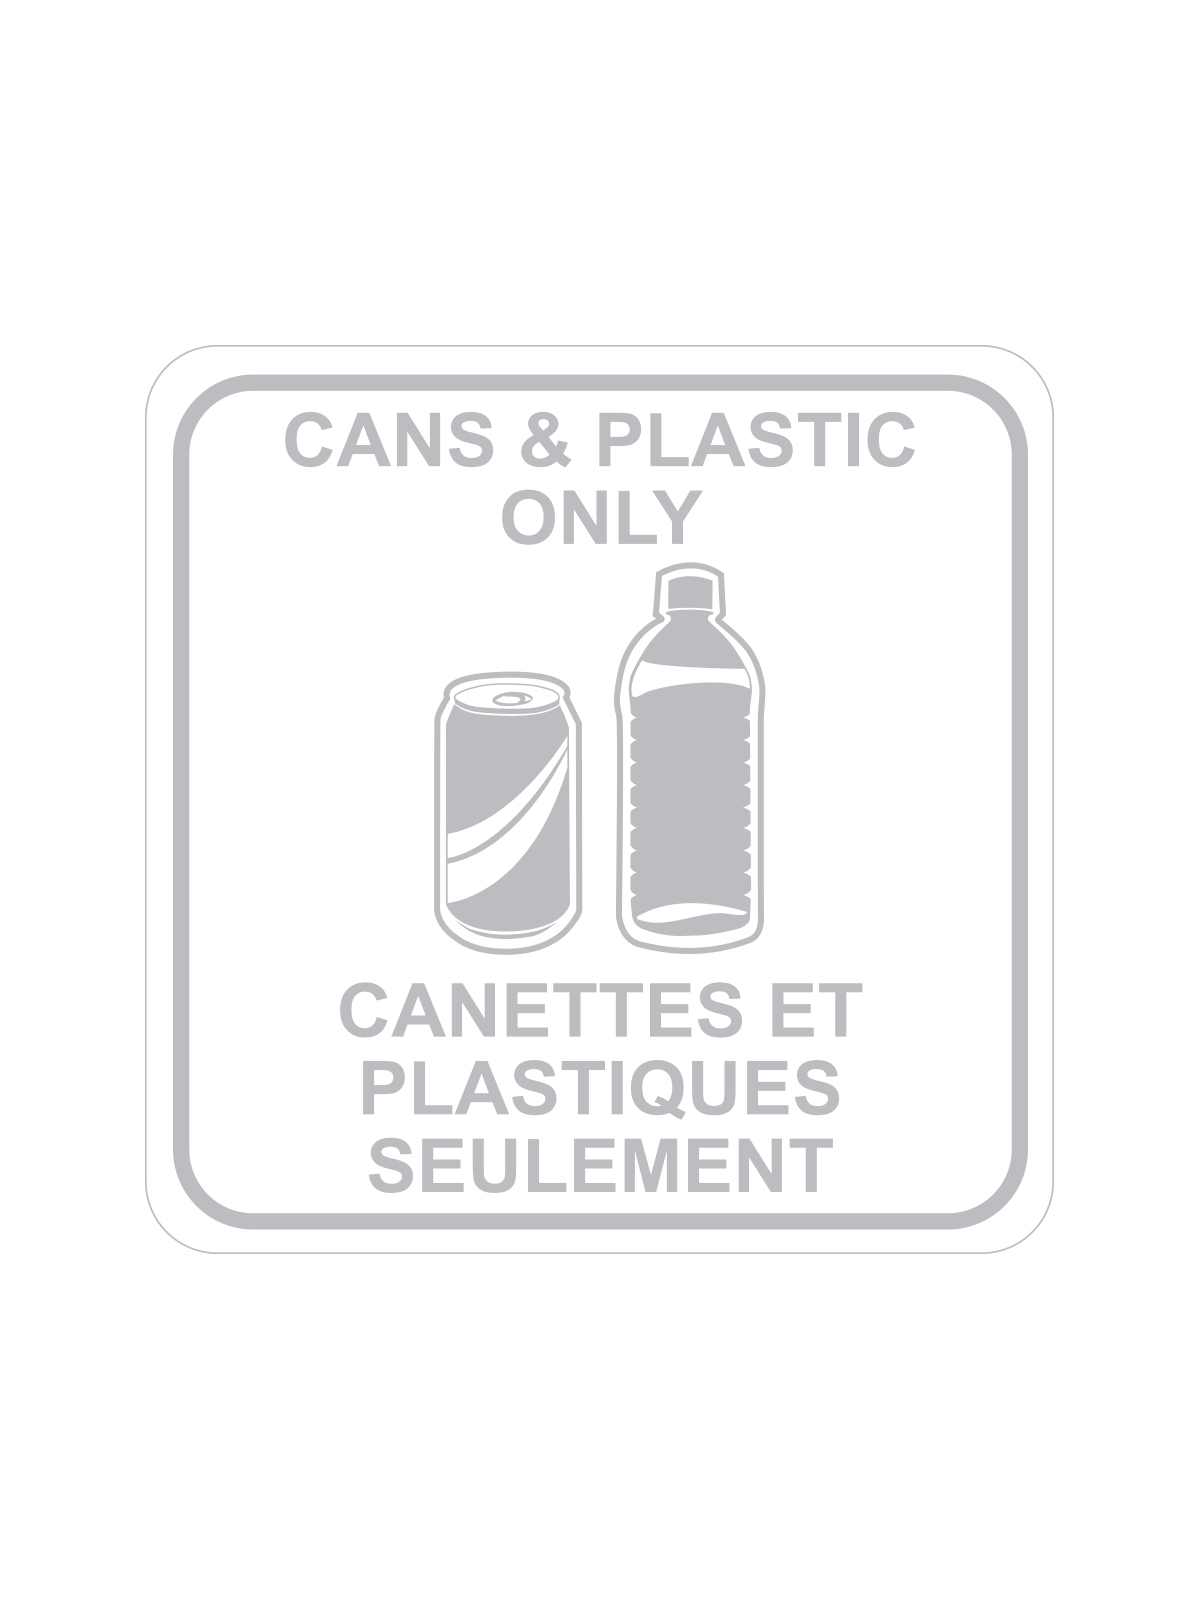 SQUARE LABEL CANS & PLASTIC ONLY - ENG/FRE